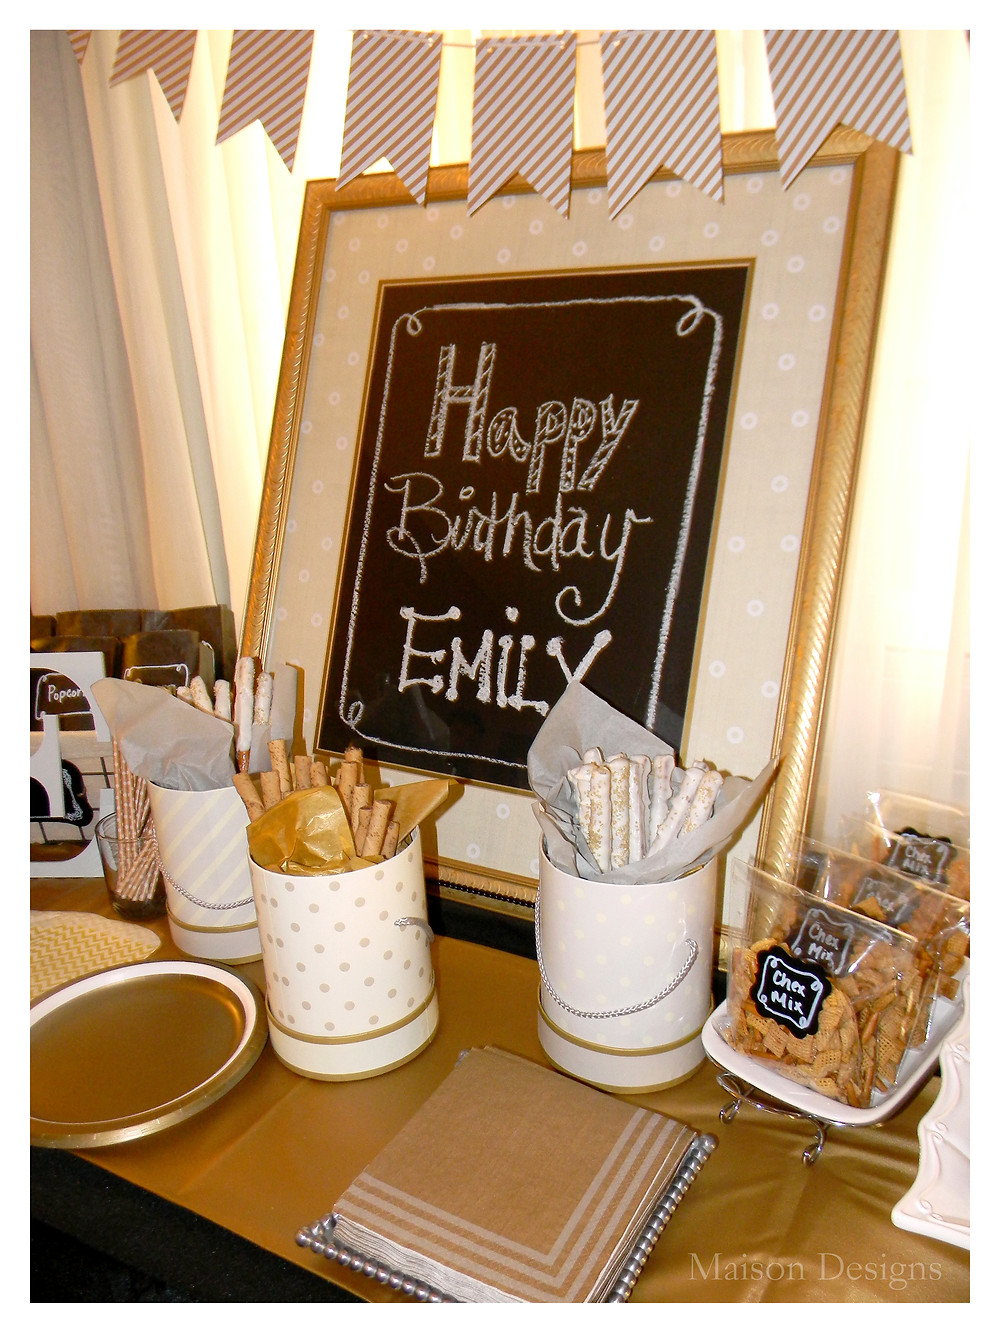 side view buffet-ems bday party 14.jpg